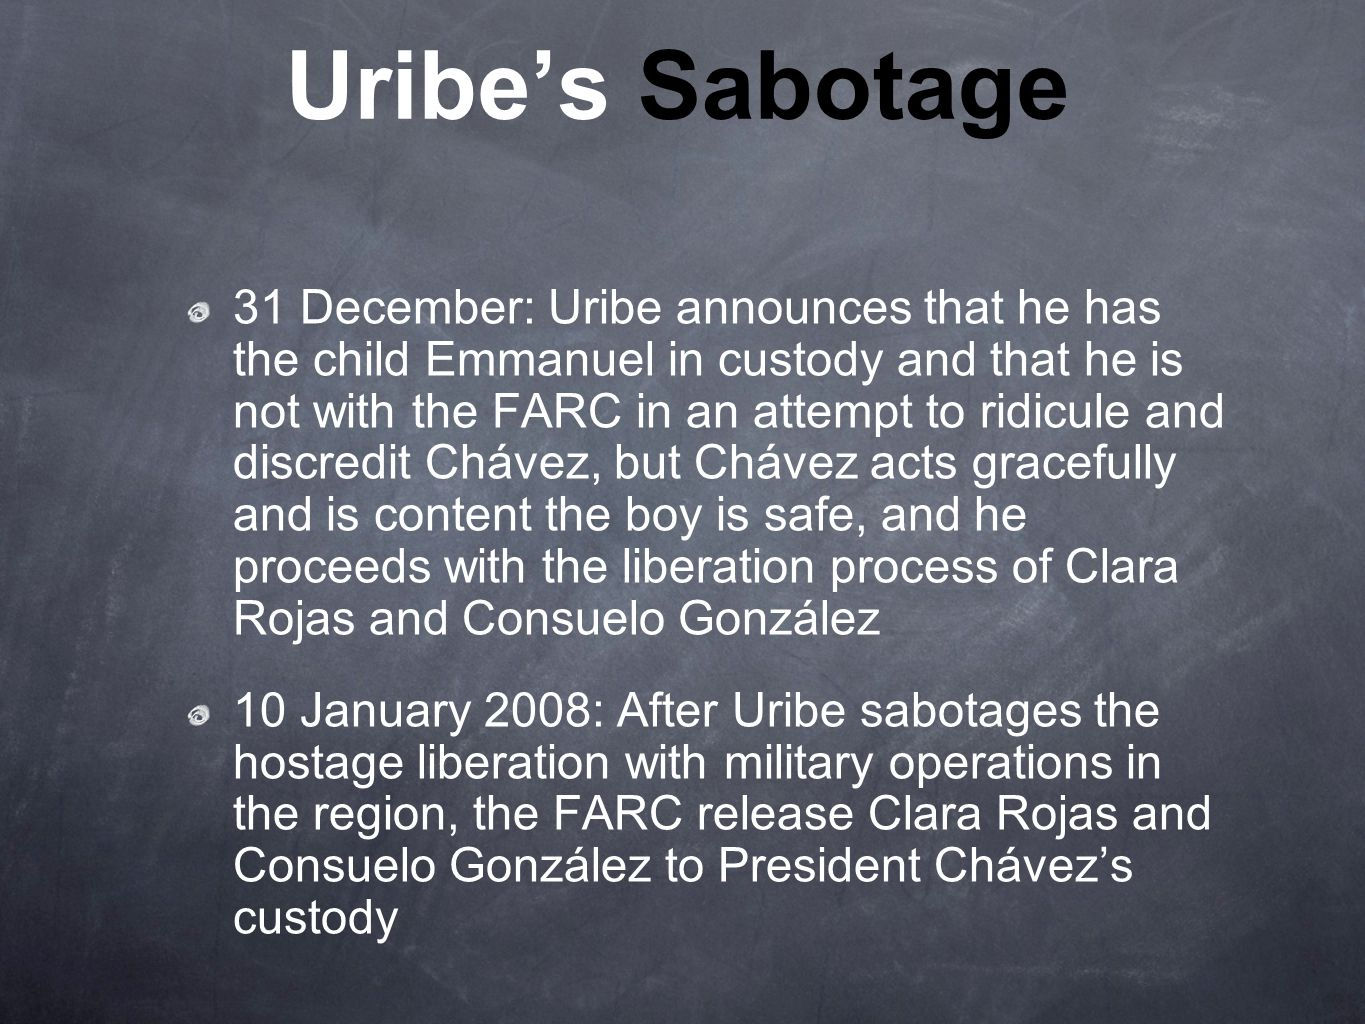 Uribe's Sabotage 31 December: Uribe announces that he has the child Emmanuel in custody and that he is not with the FARC in an attempt to ridicule and discredit Chávez, but Chávez acts gracefully and is content the boy is safe, and he proceeds with the liberation process of Clara Rojas and Consuelo González 10 January 2008: After Uribe sabotages the hostage liberation with military operations in the region, the FARC release Clara Rojas and Consuelo González to President Chávez's custody